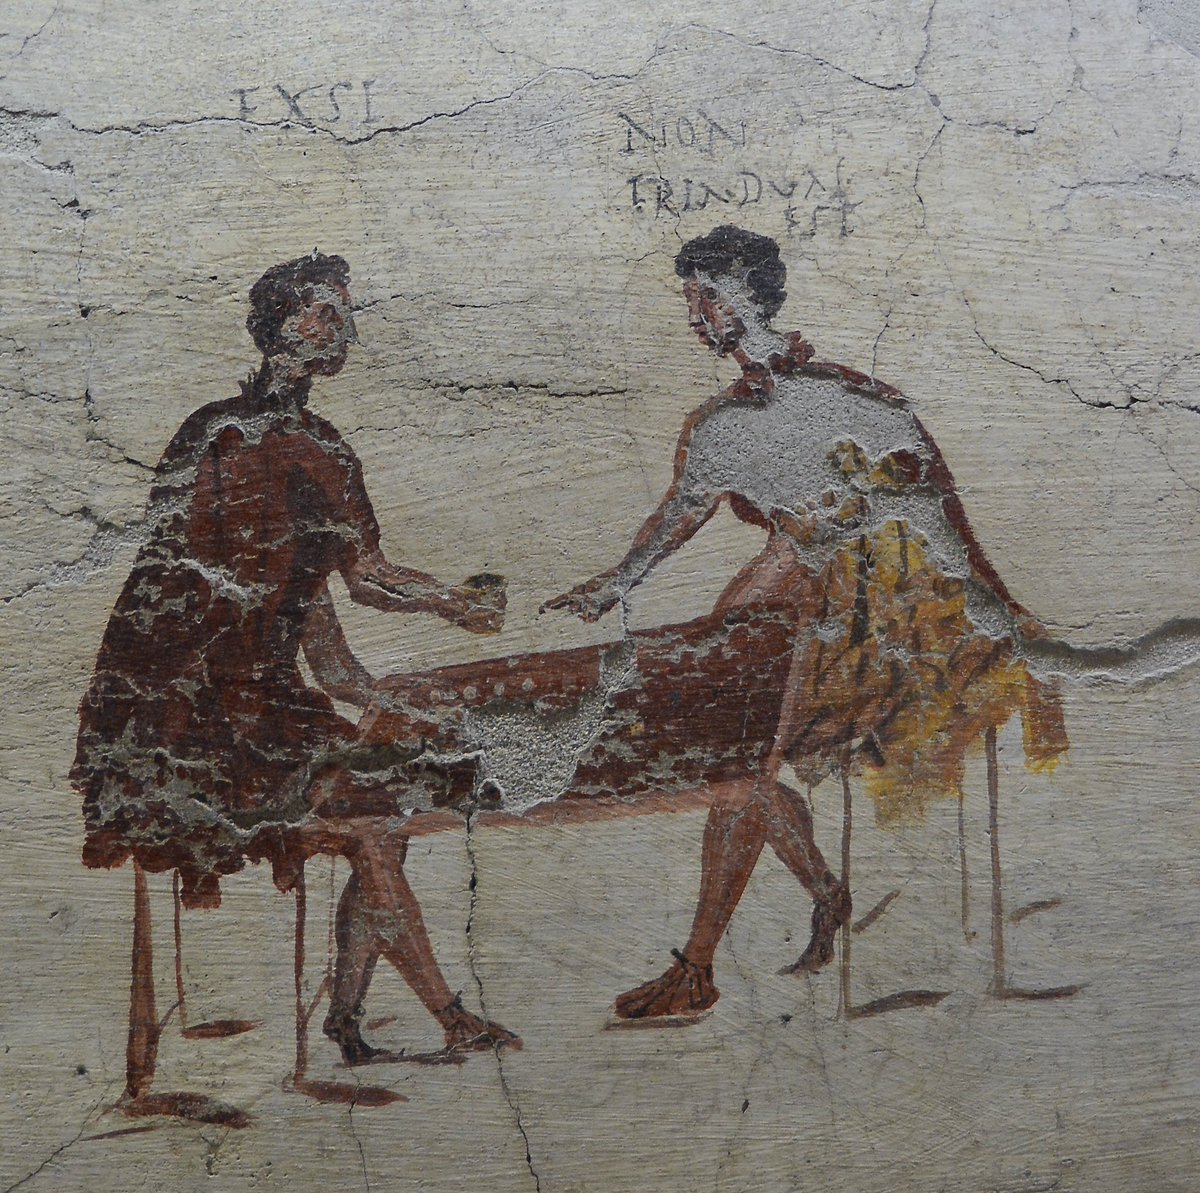 """Following on from @pompeii_sites #MuseumWeek #PlayMW tweet, I recently saw this fresco in Naples and the written captions above the Roman gamers are delightful: one man exclaims """"I've got it"""" and the other retorts """"it's a 2 not a 3"""".   https:// twitter.com/pompeii_sites/ status/1128560837273300992?s=21 &nbsp; … <br>http://pic.twitter.com/6pJwAxVyEh"""